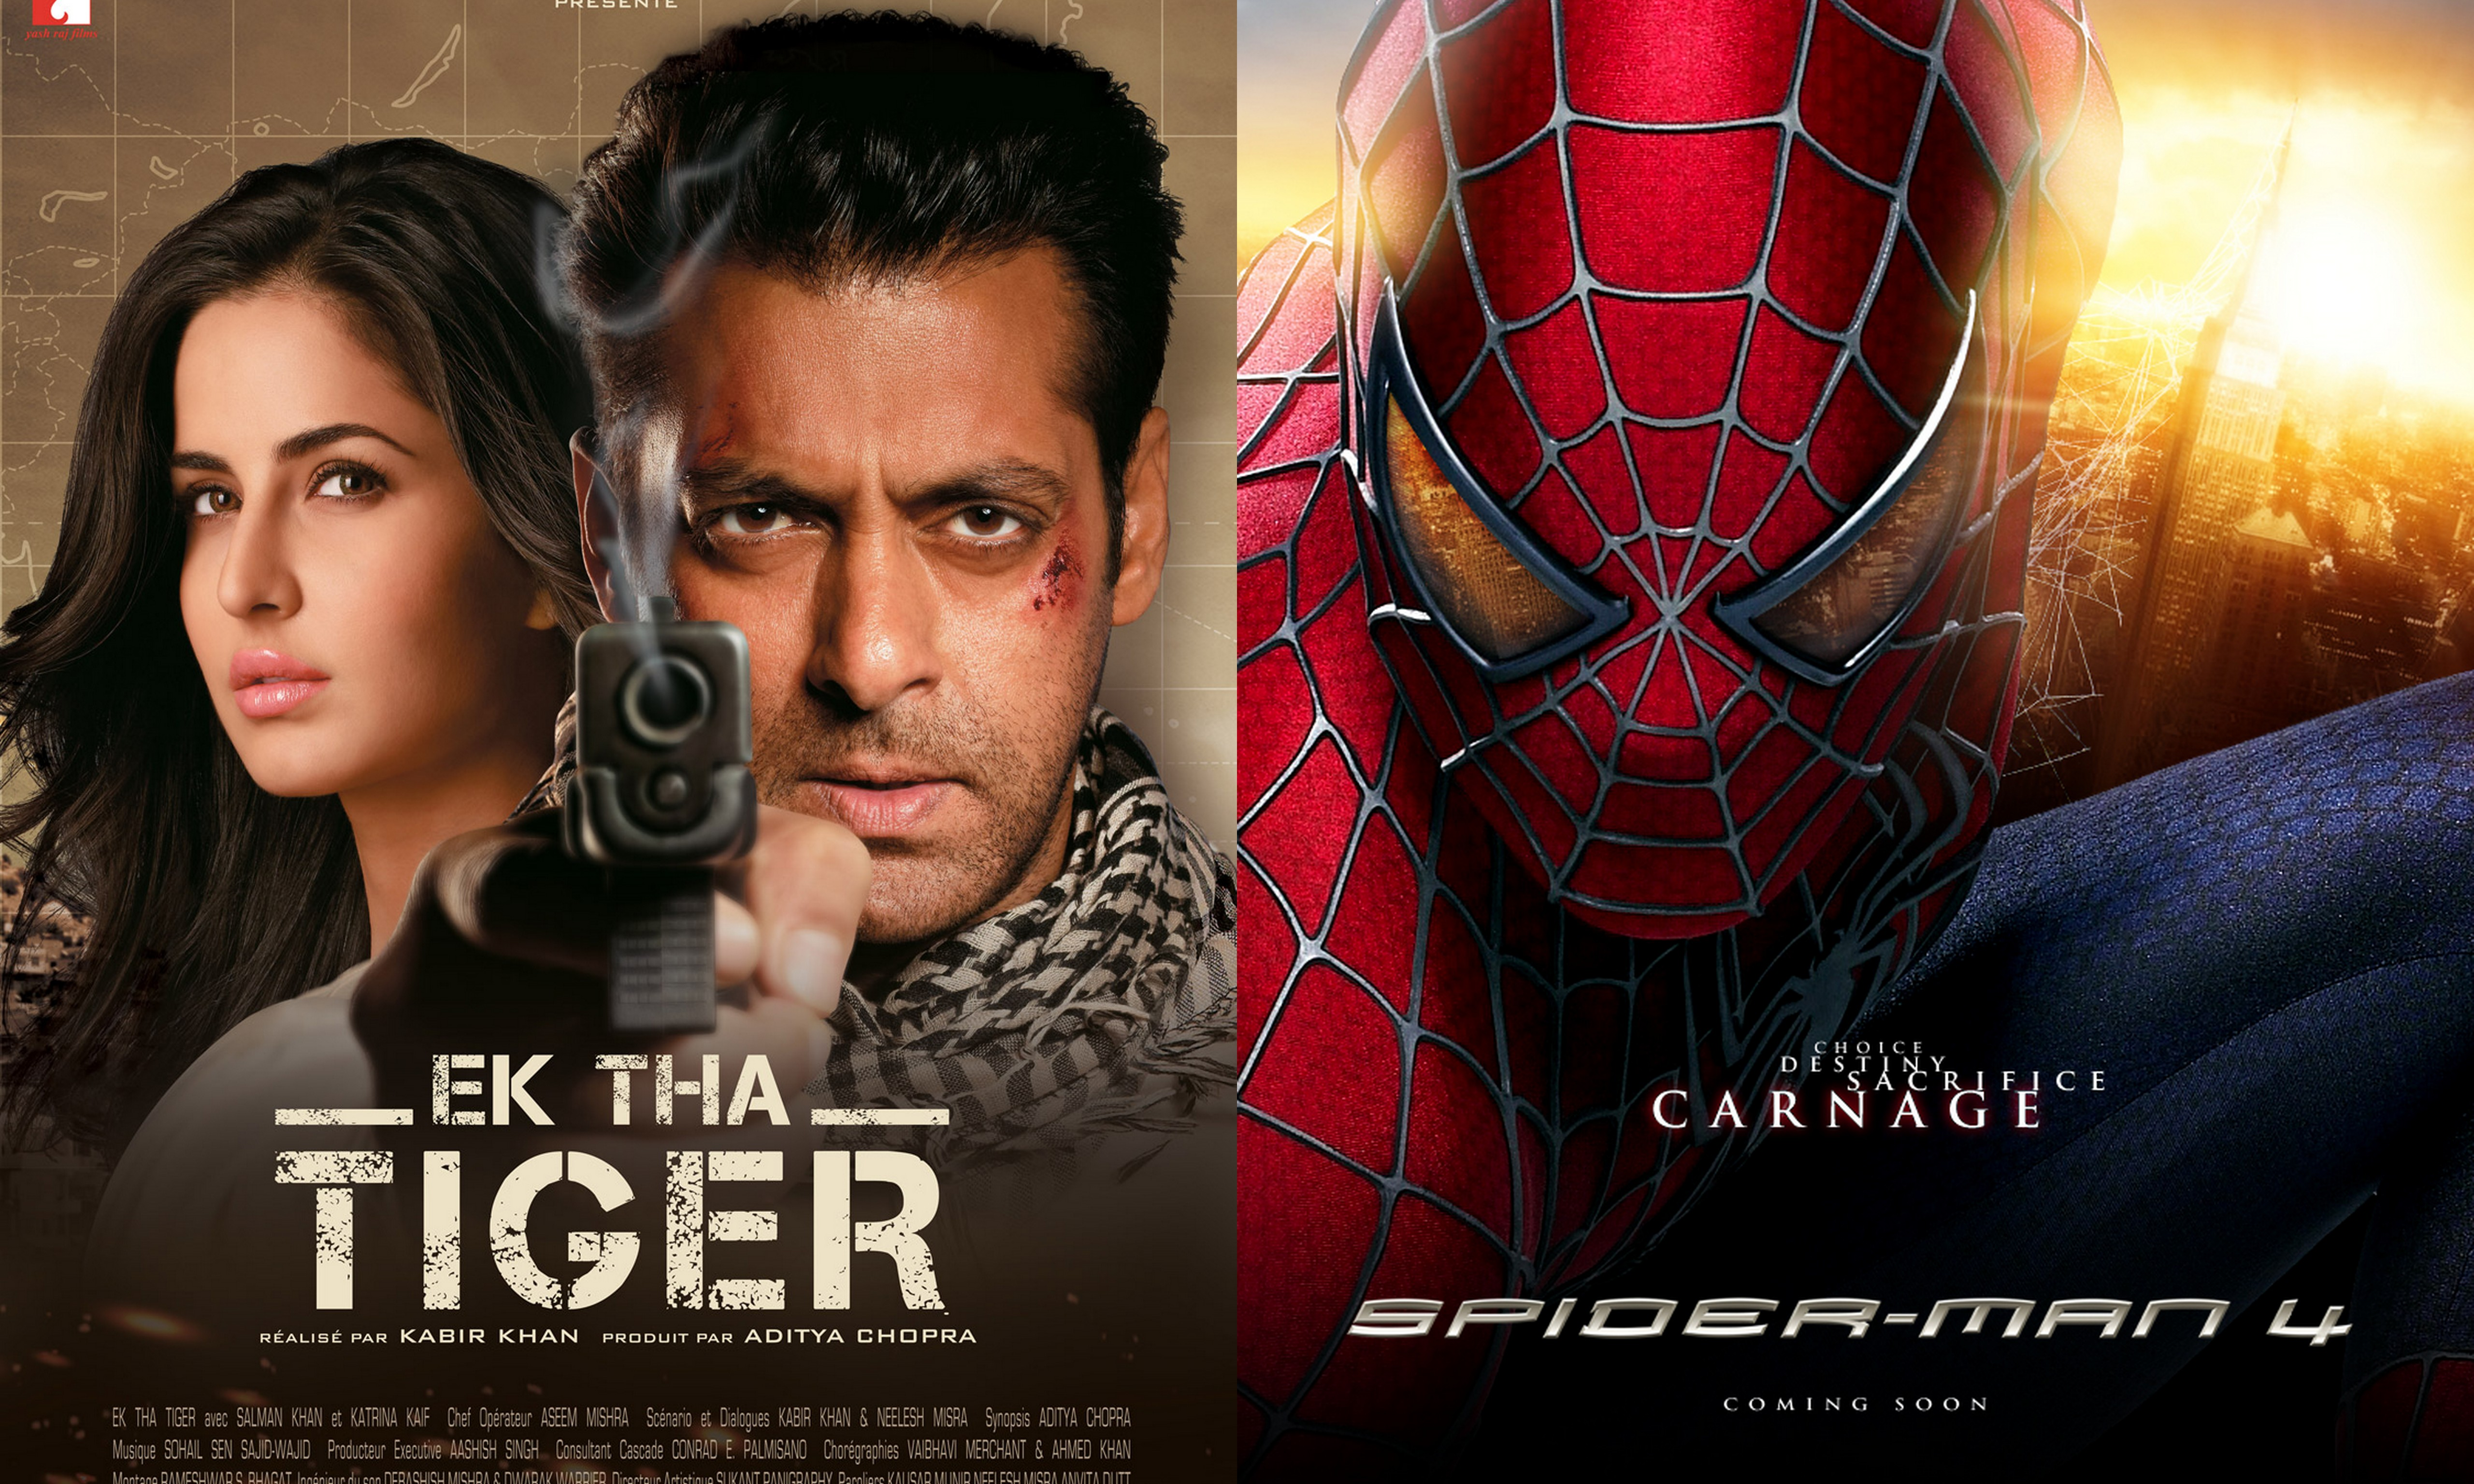 Ek Tha Tiger Will Be Shown With Spiderman 4